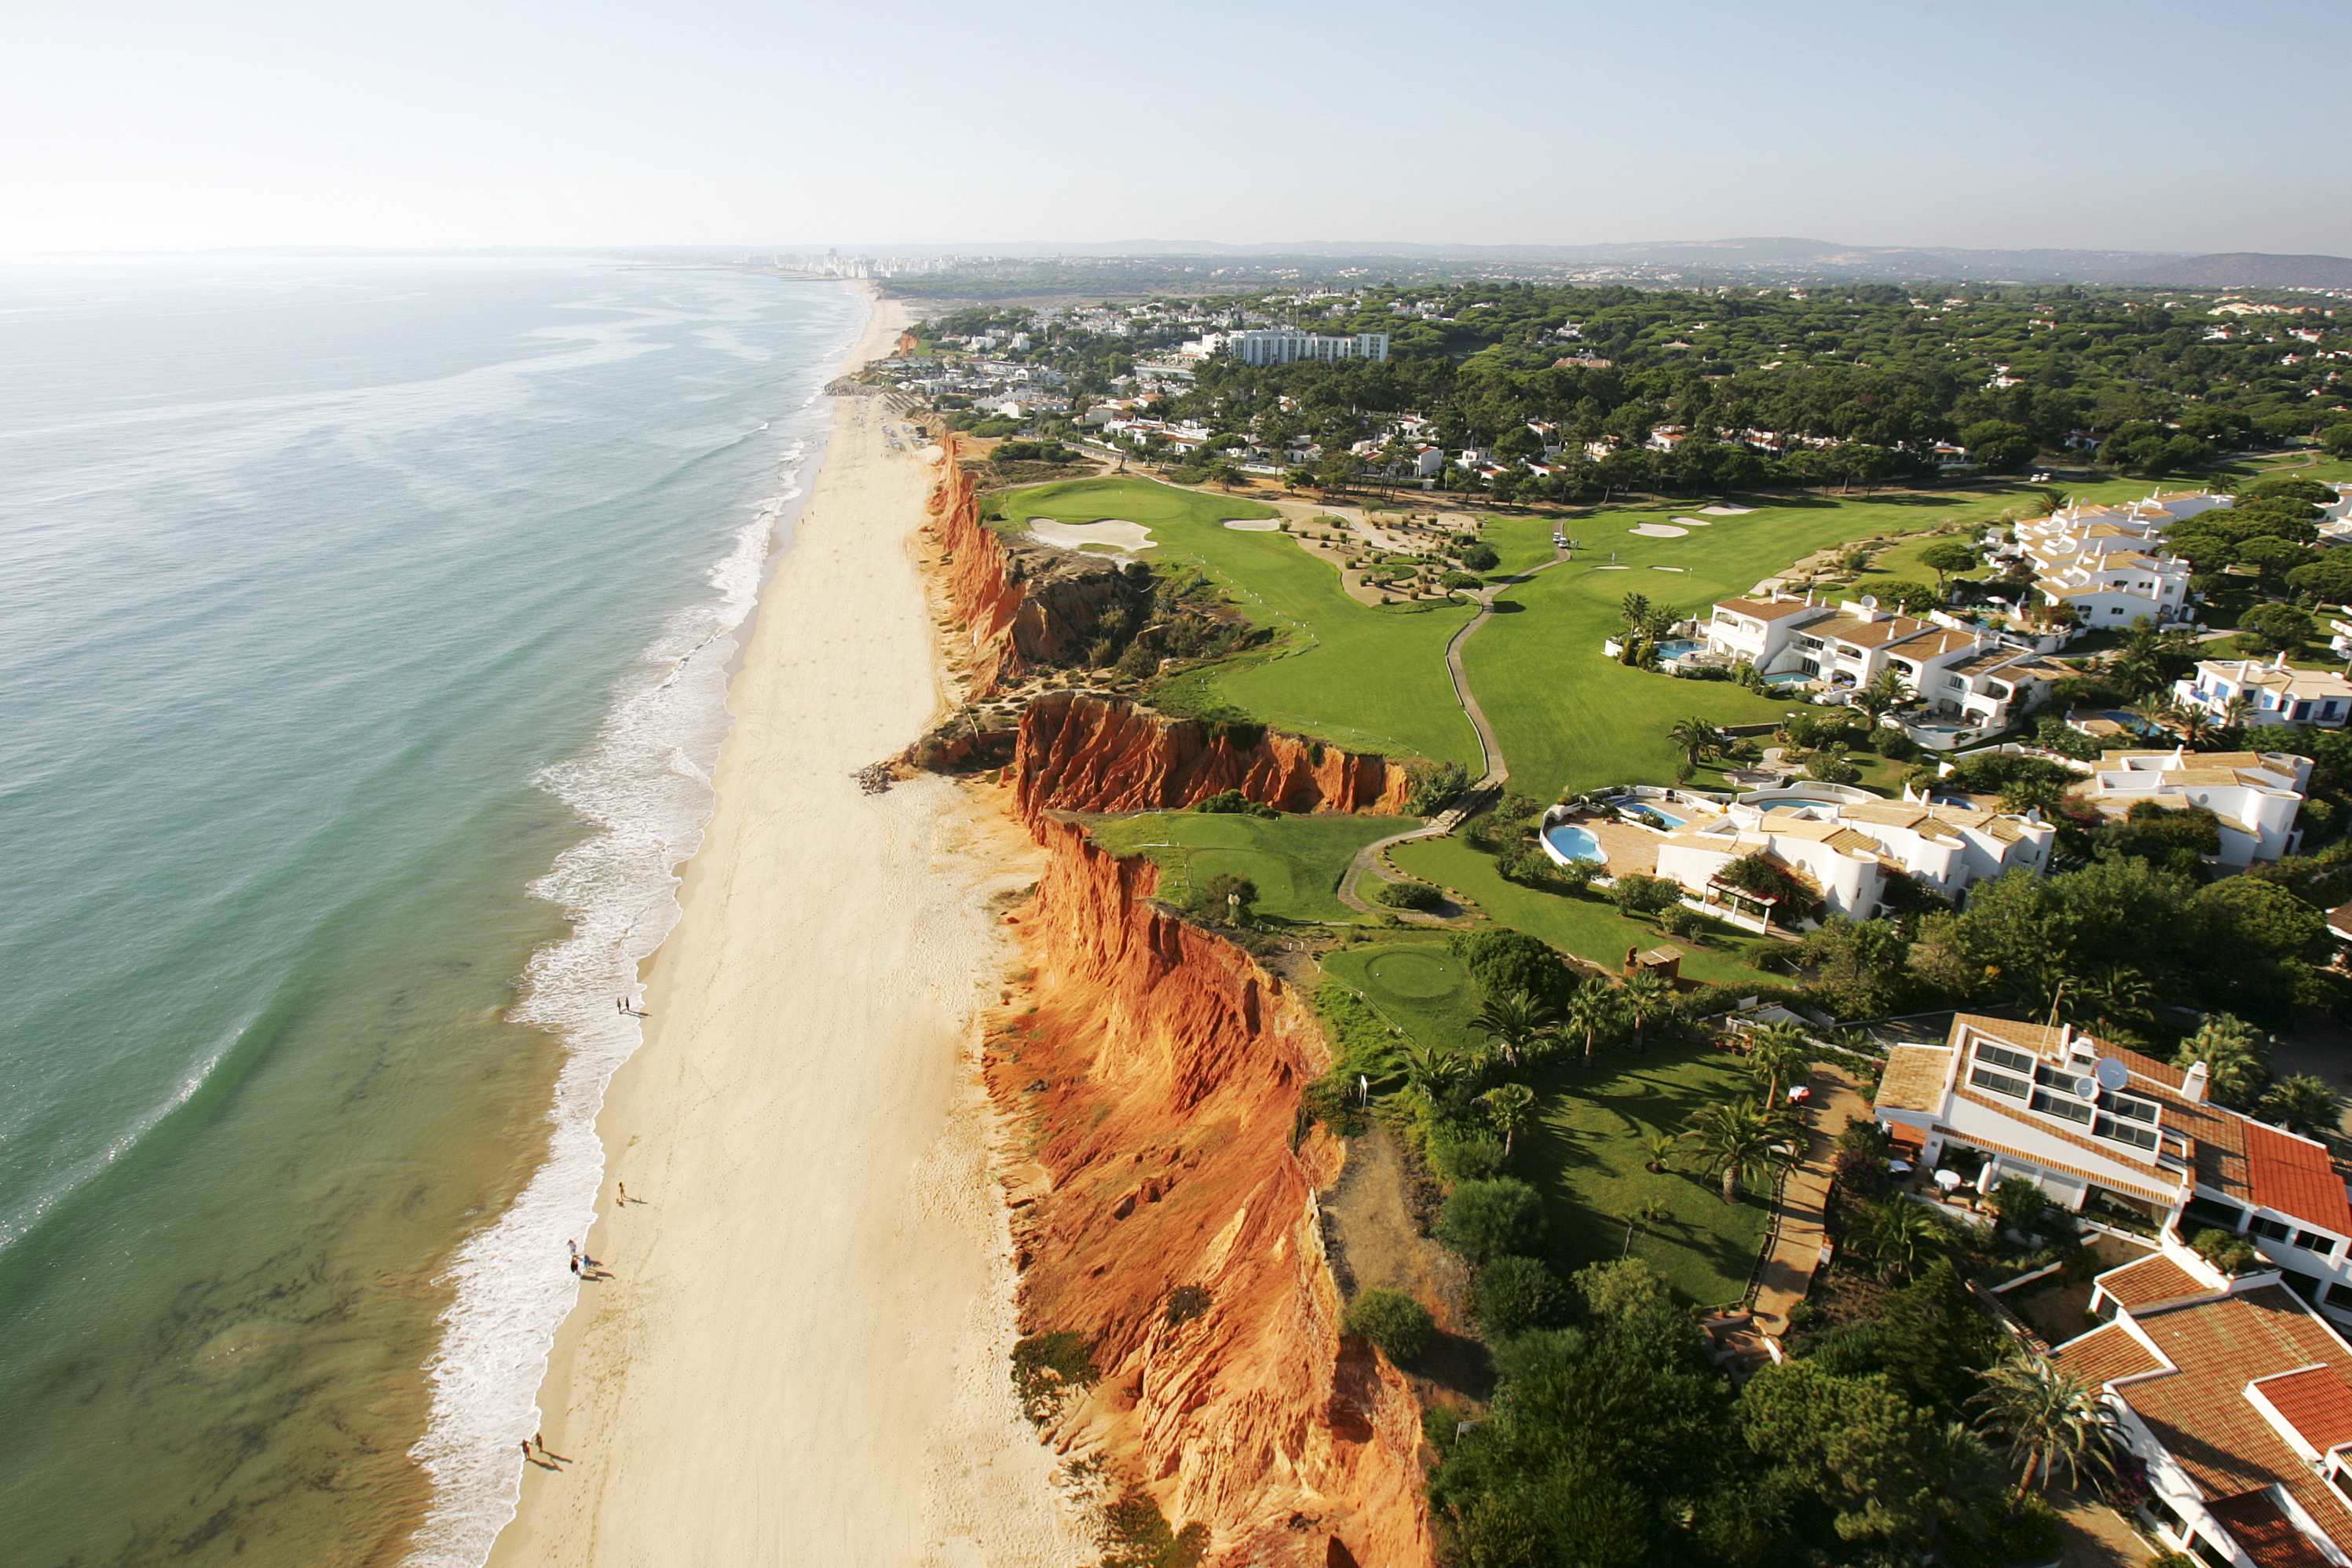 The signature 16th hole at Vale do Lobo's Royal course skirts the cliff edge